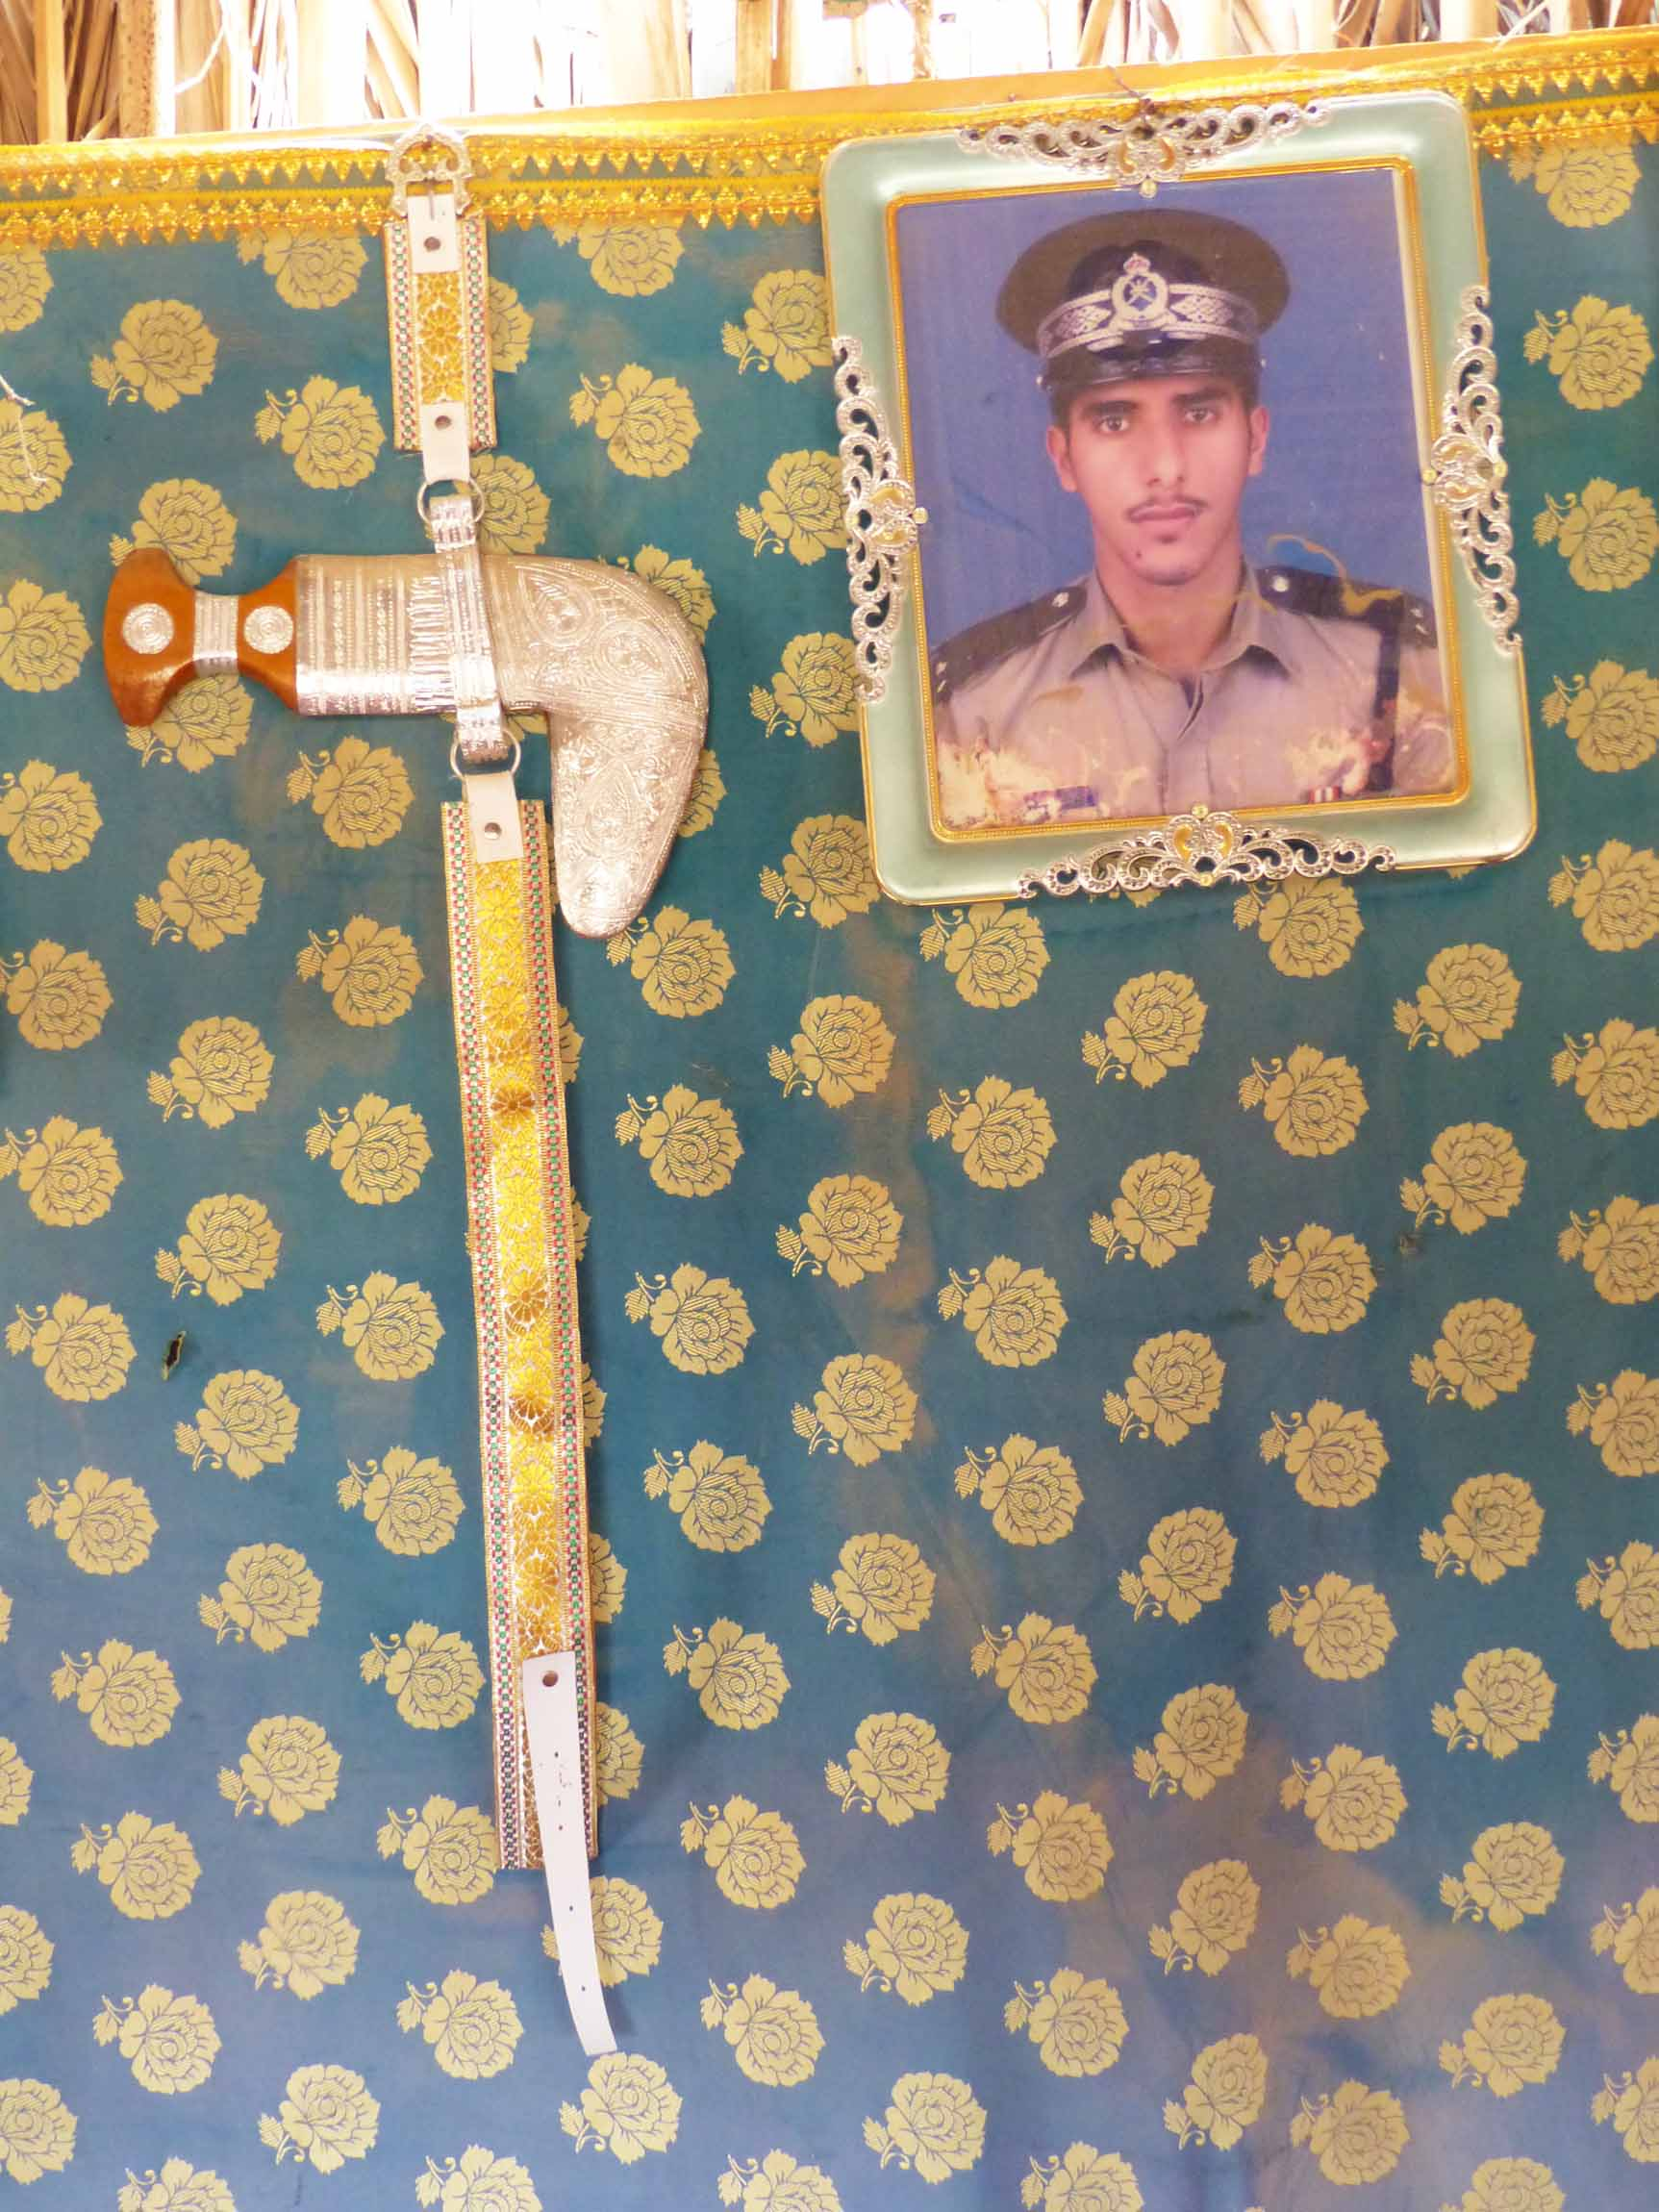 Knife and photo of a soldier